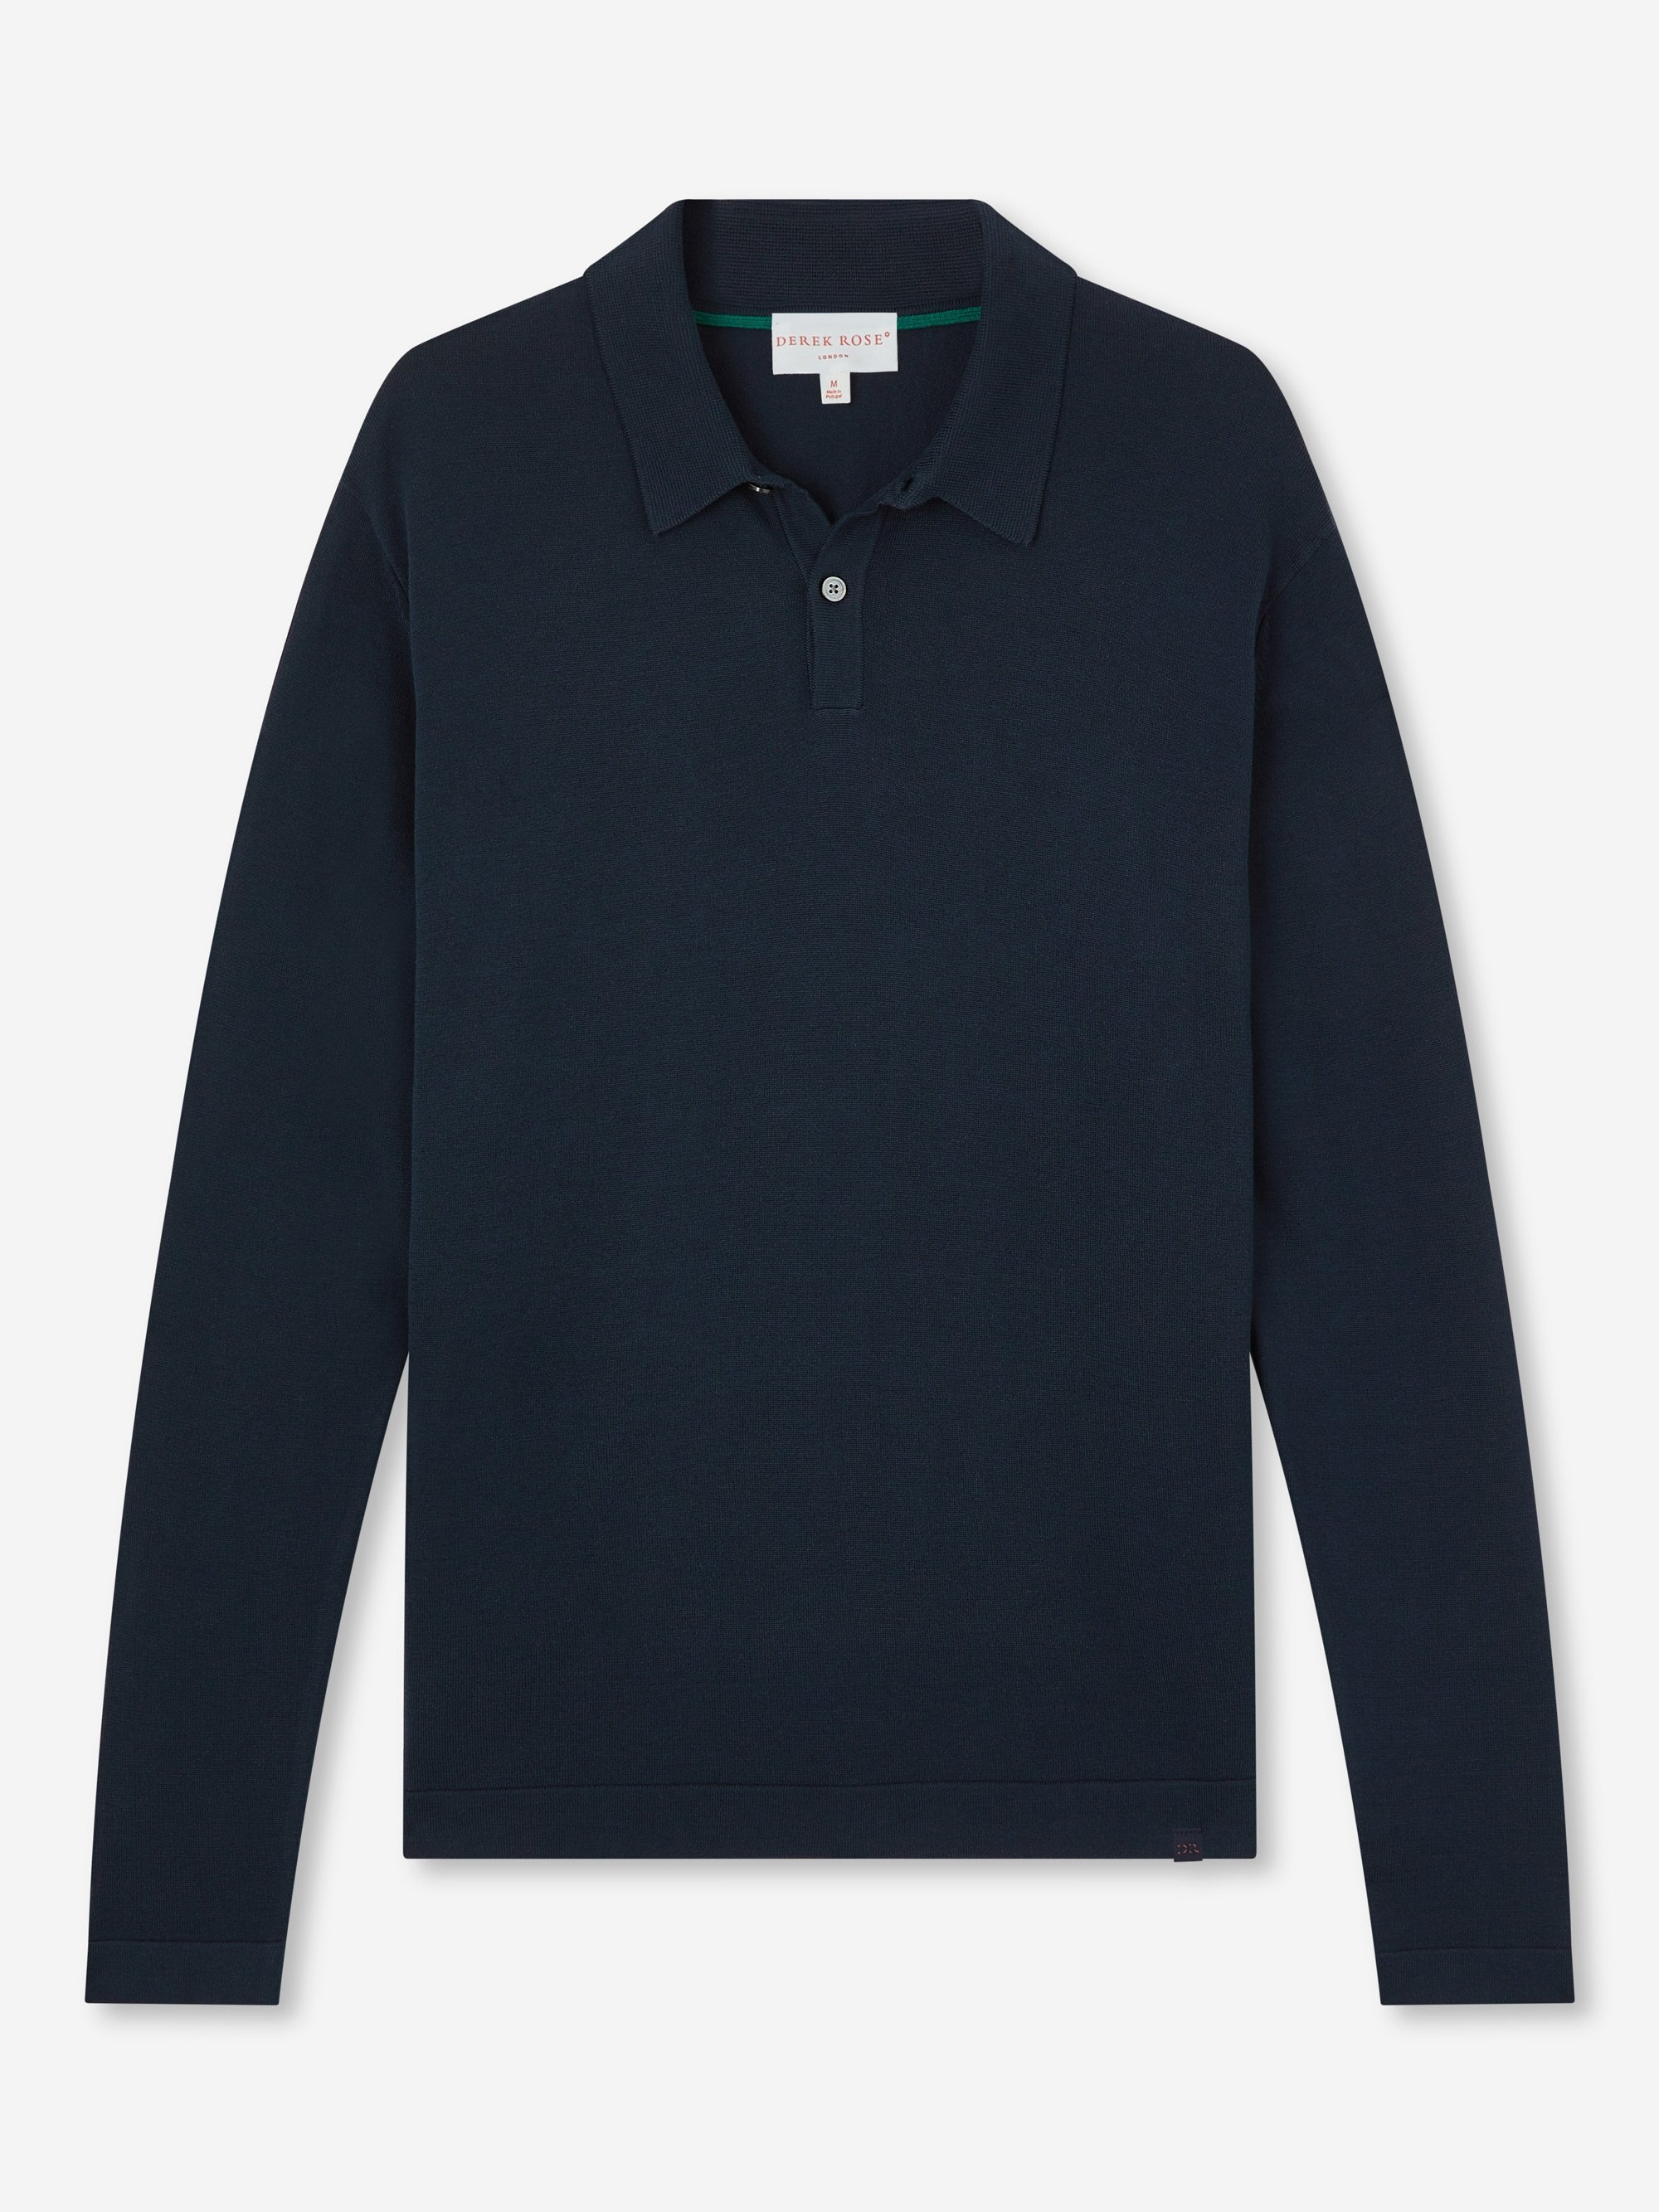 Men's Long Sleeve Polo Shirt Jacob Sea Island Cotton Navy